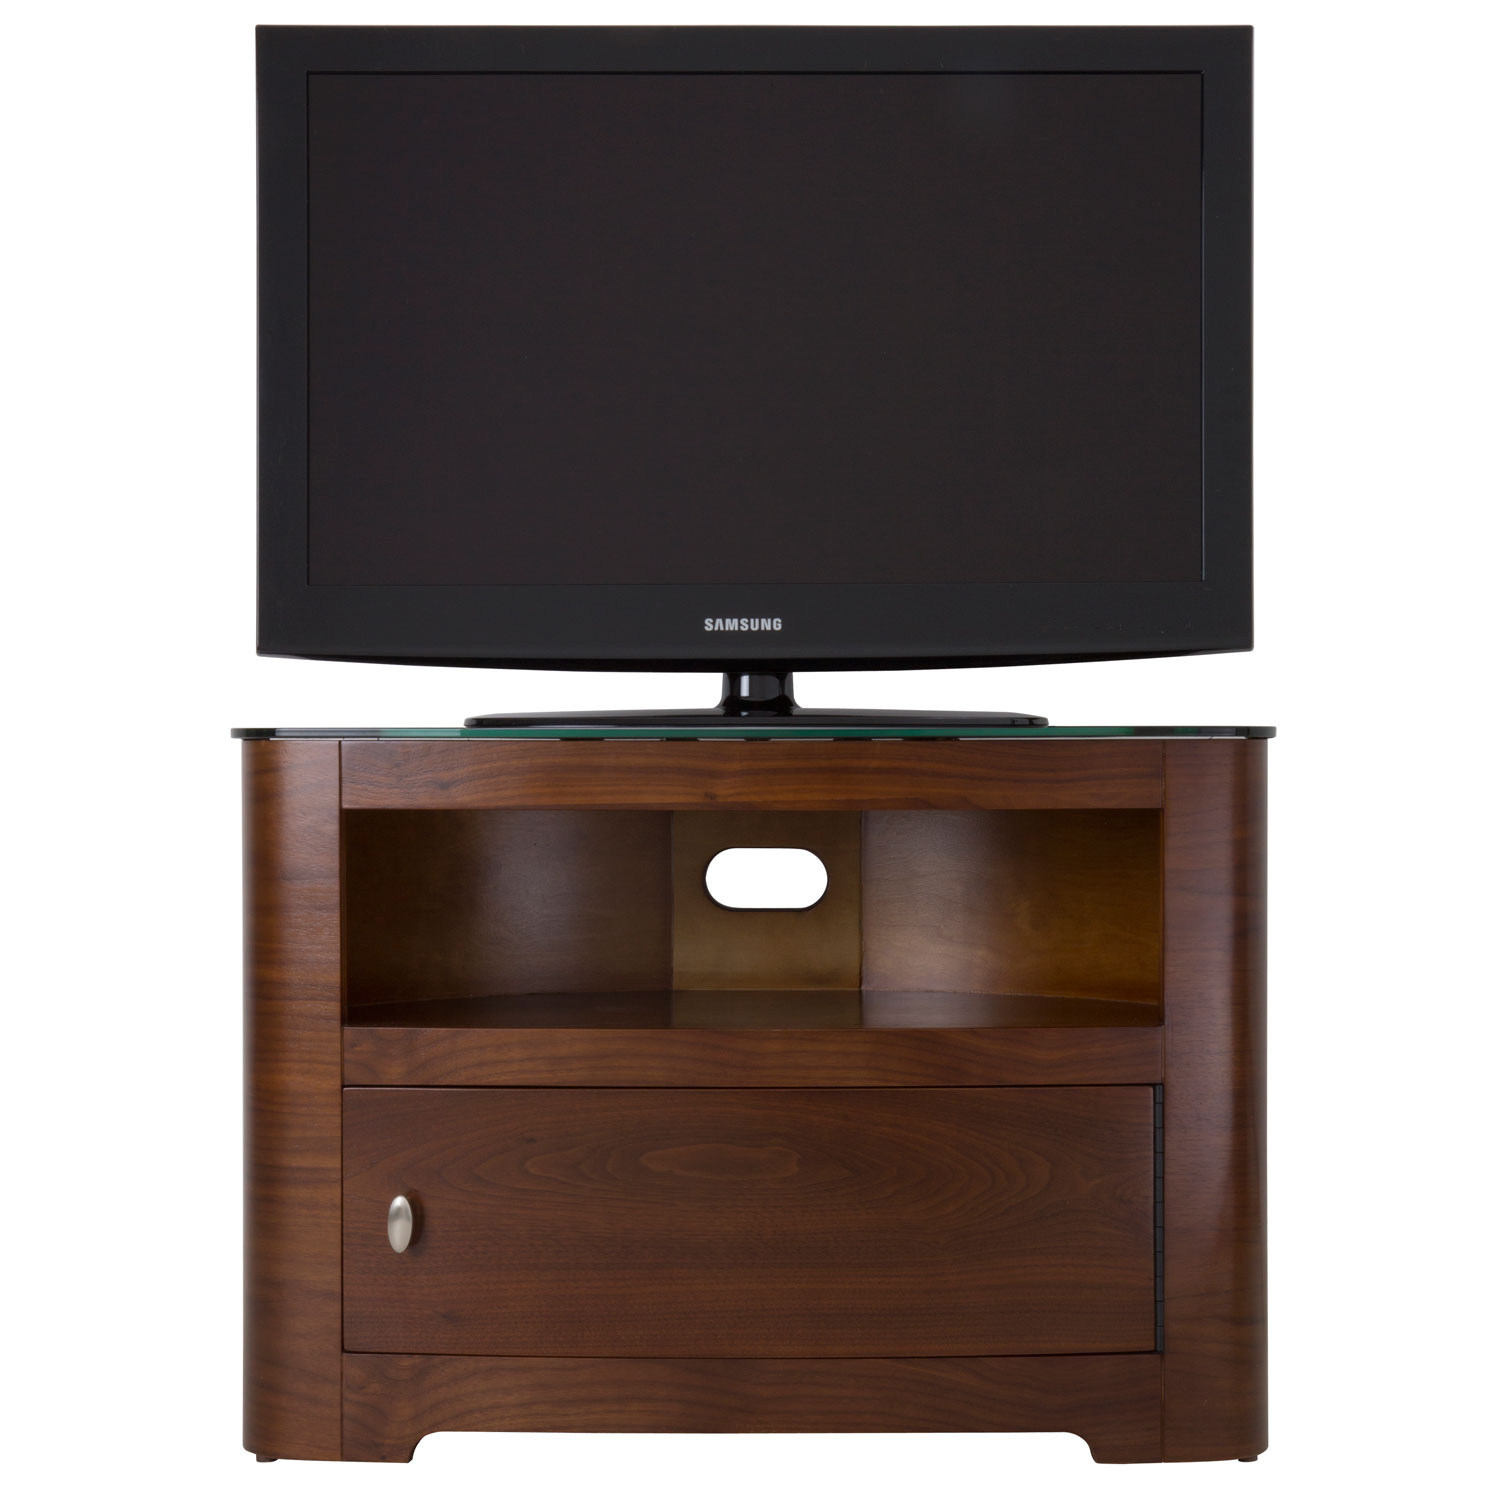 Best ideas about Tall Tv Stands For Bedroom . Save or Pin Modern Tall Wood Bedroom Tv Stand With Shelf And Cabinet Now.